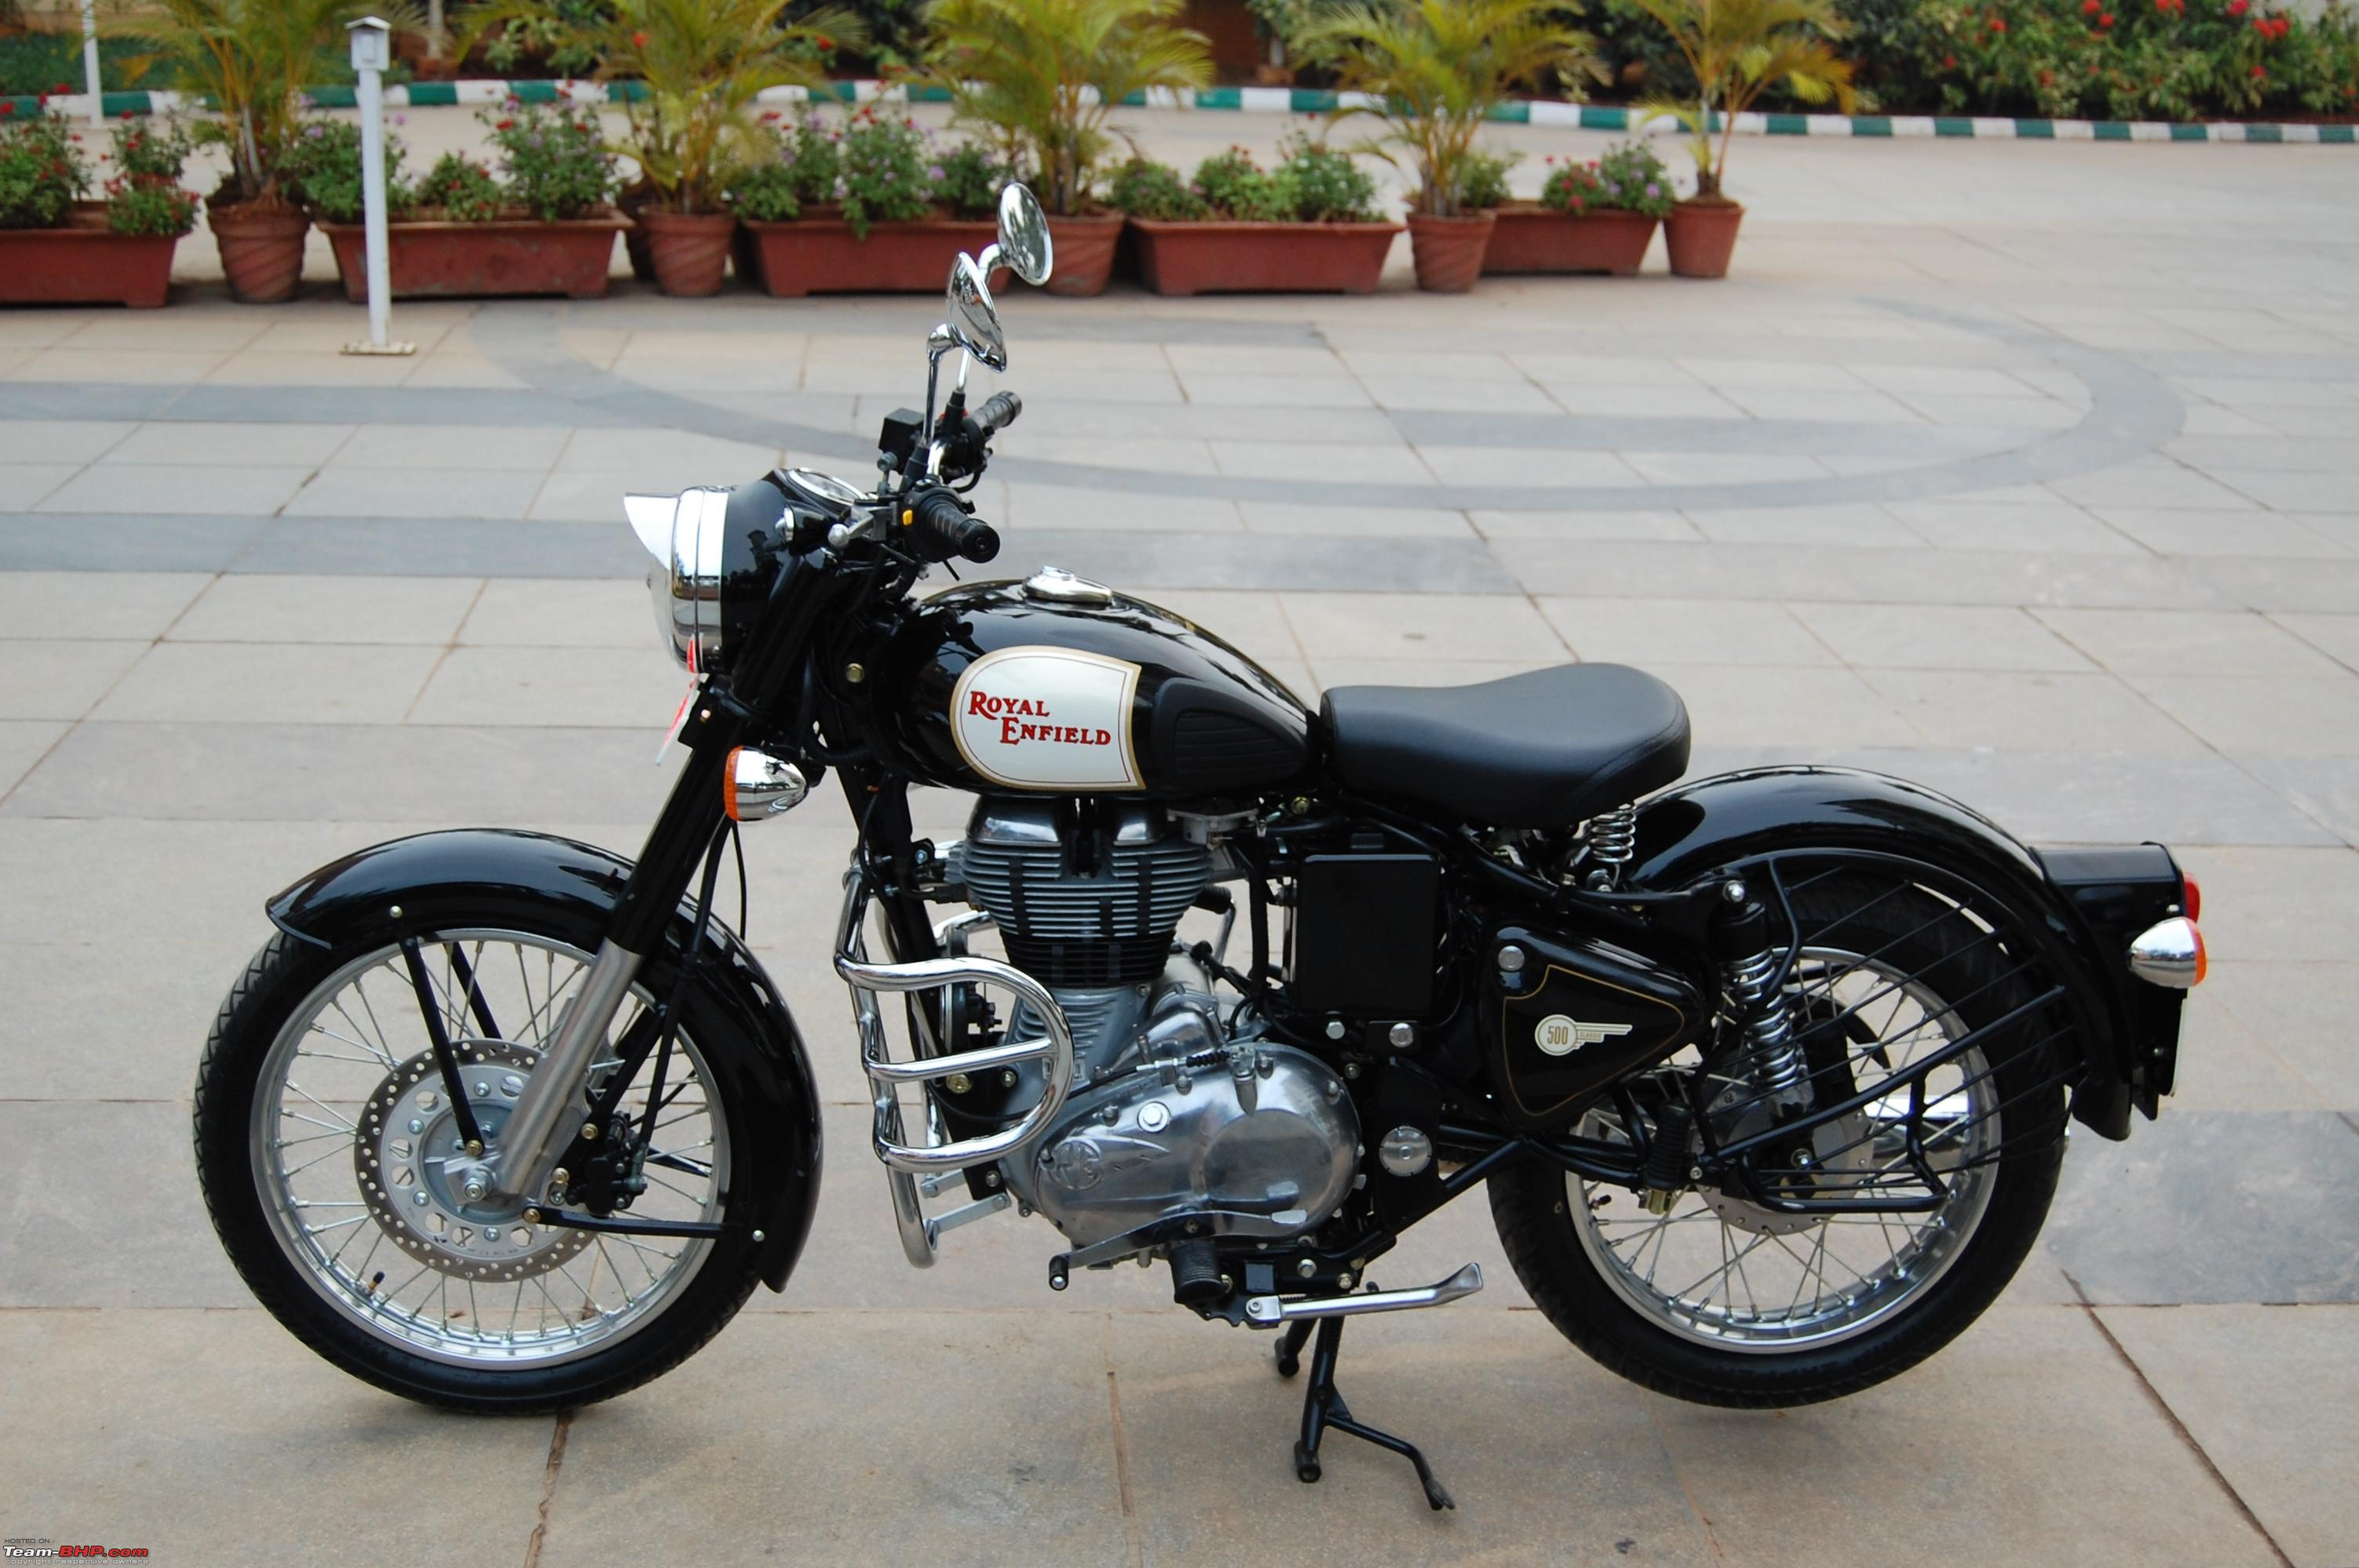 The Royal Enfield 500 Classic thread! - Page 133 - Team-BHP